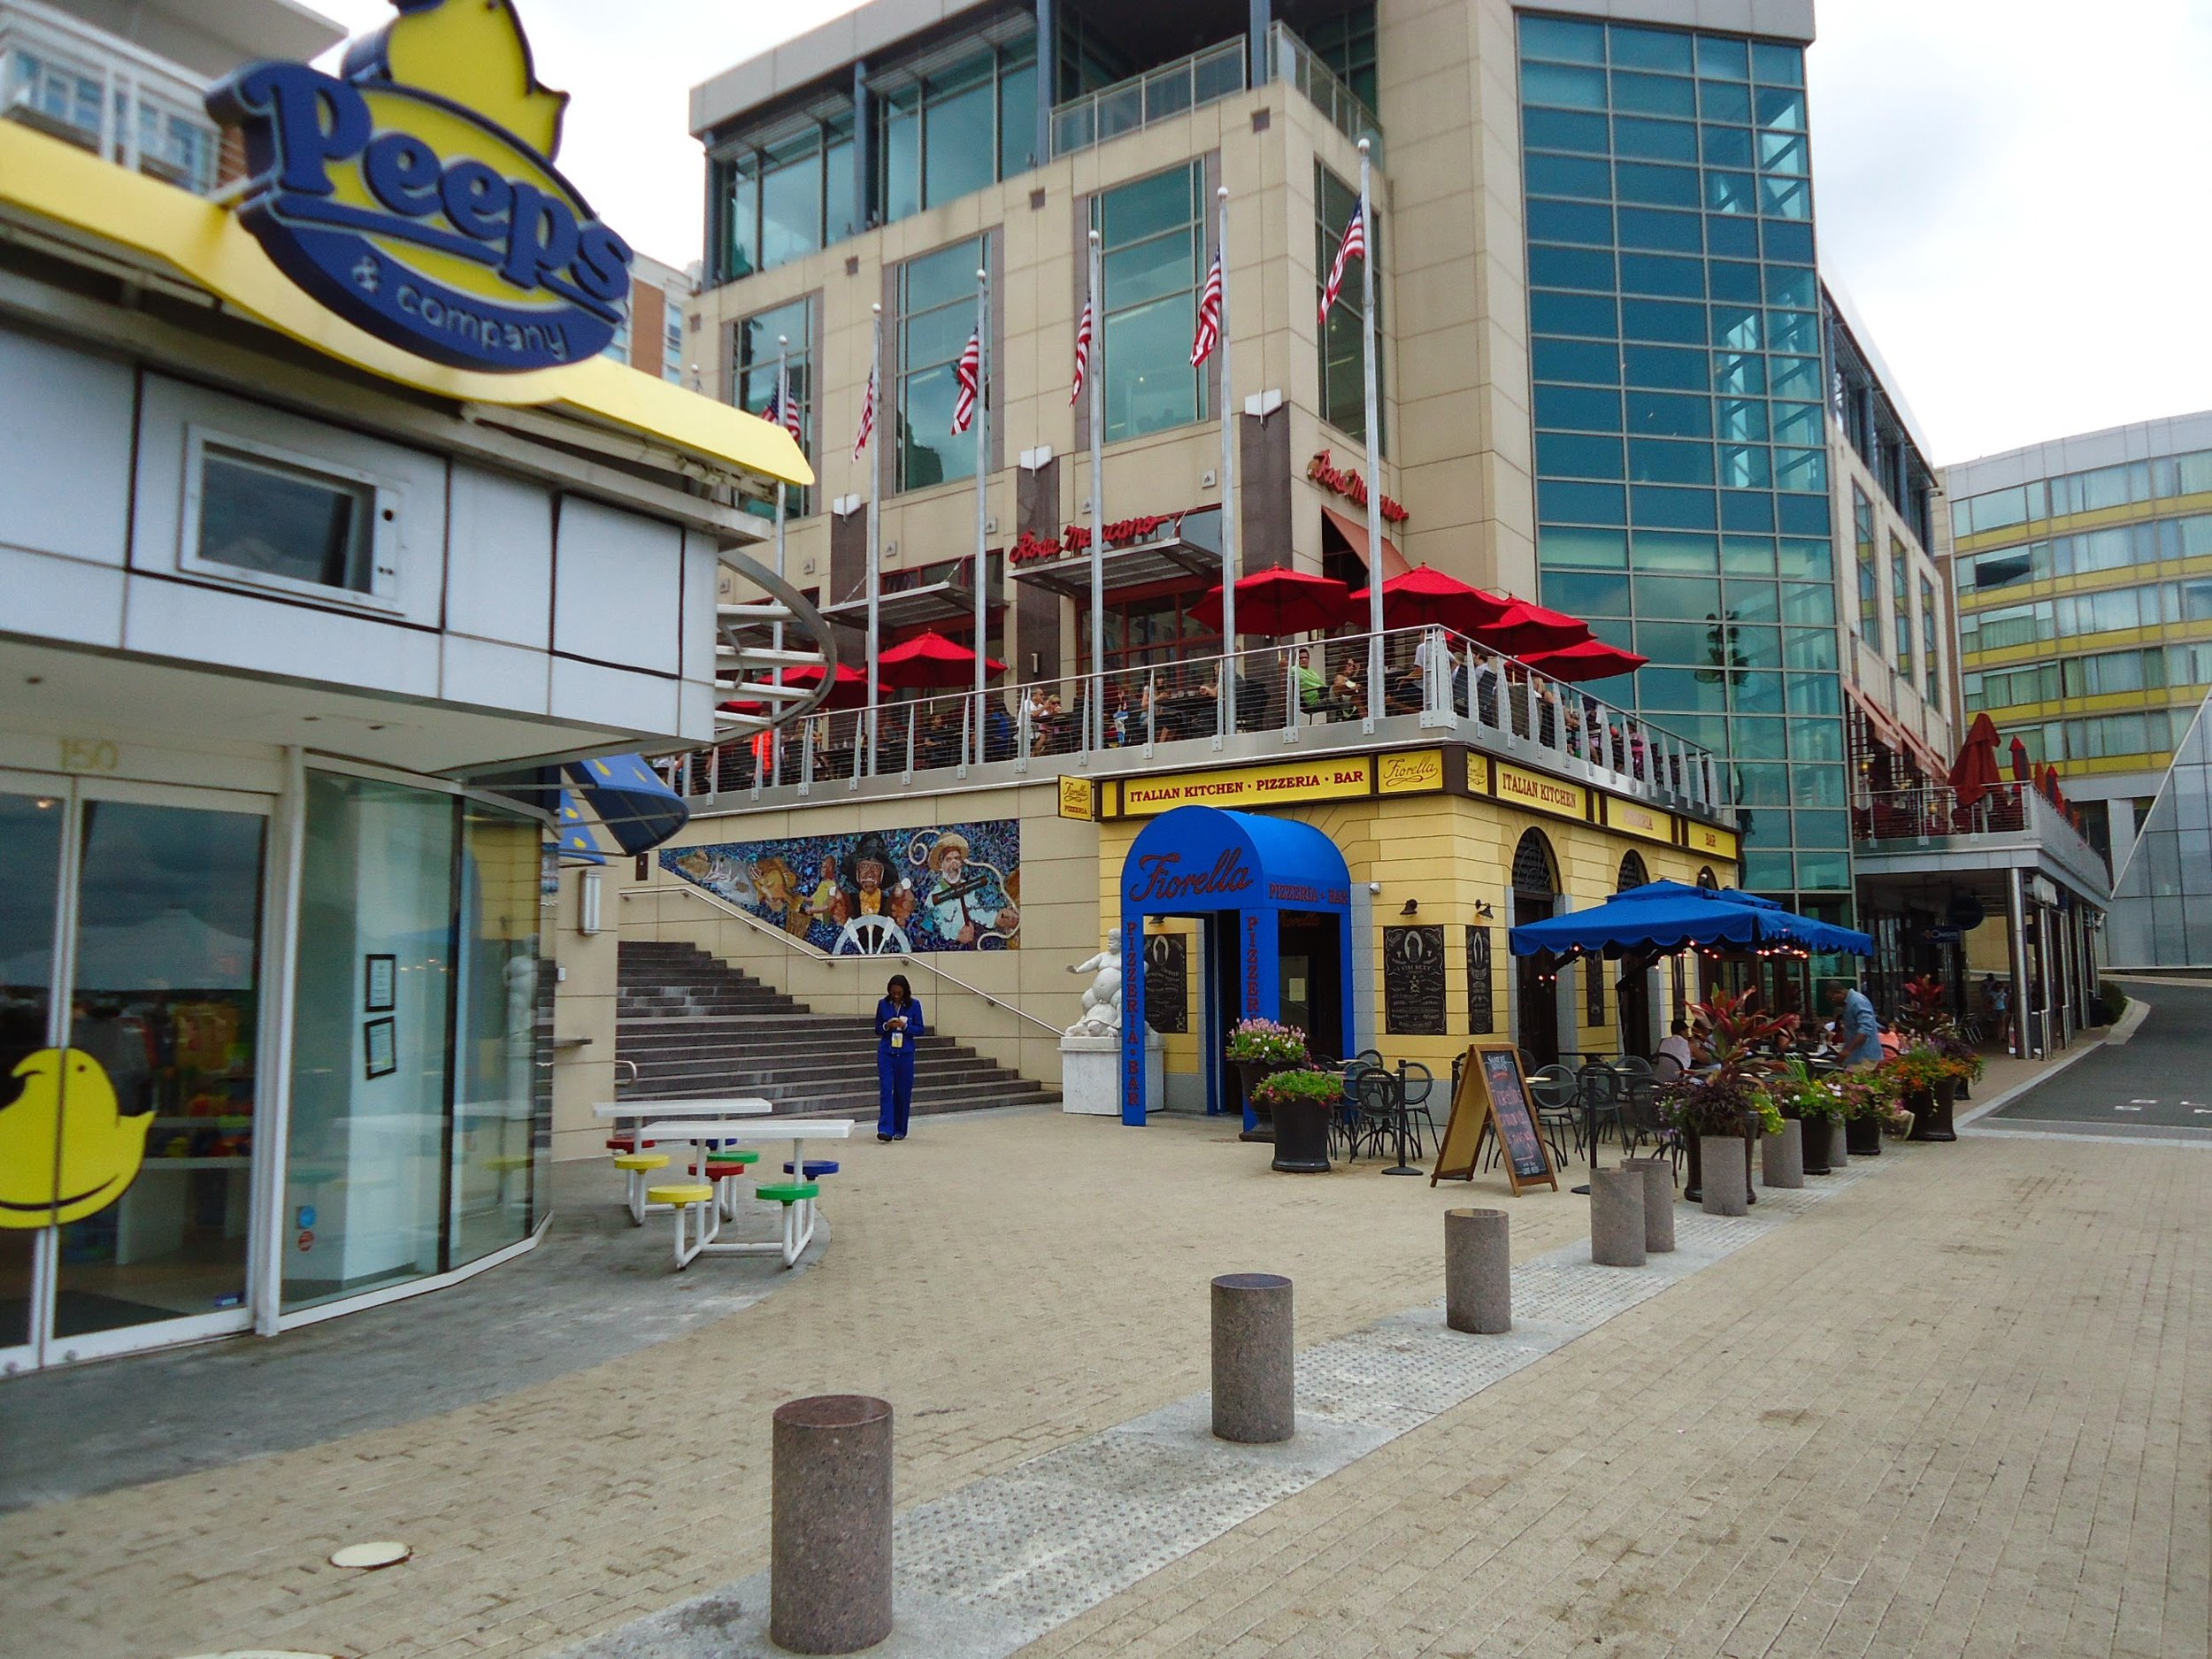 View_of_stores_and_restaurants_at_National_Harbor_in_Maryland